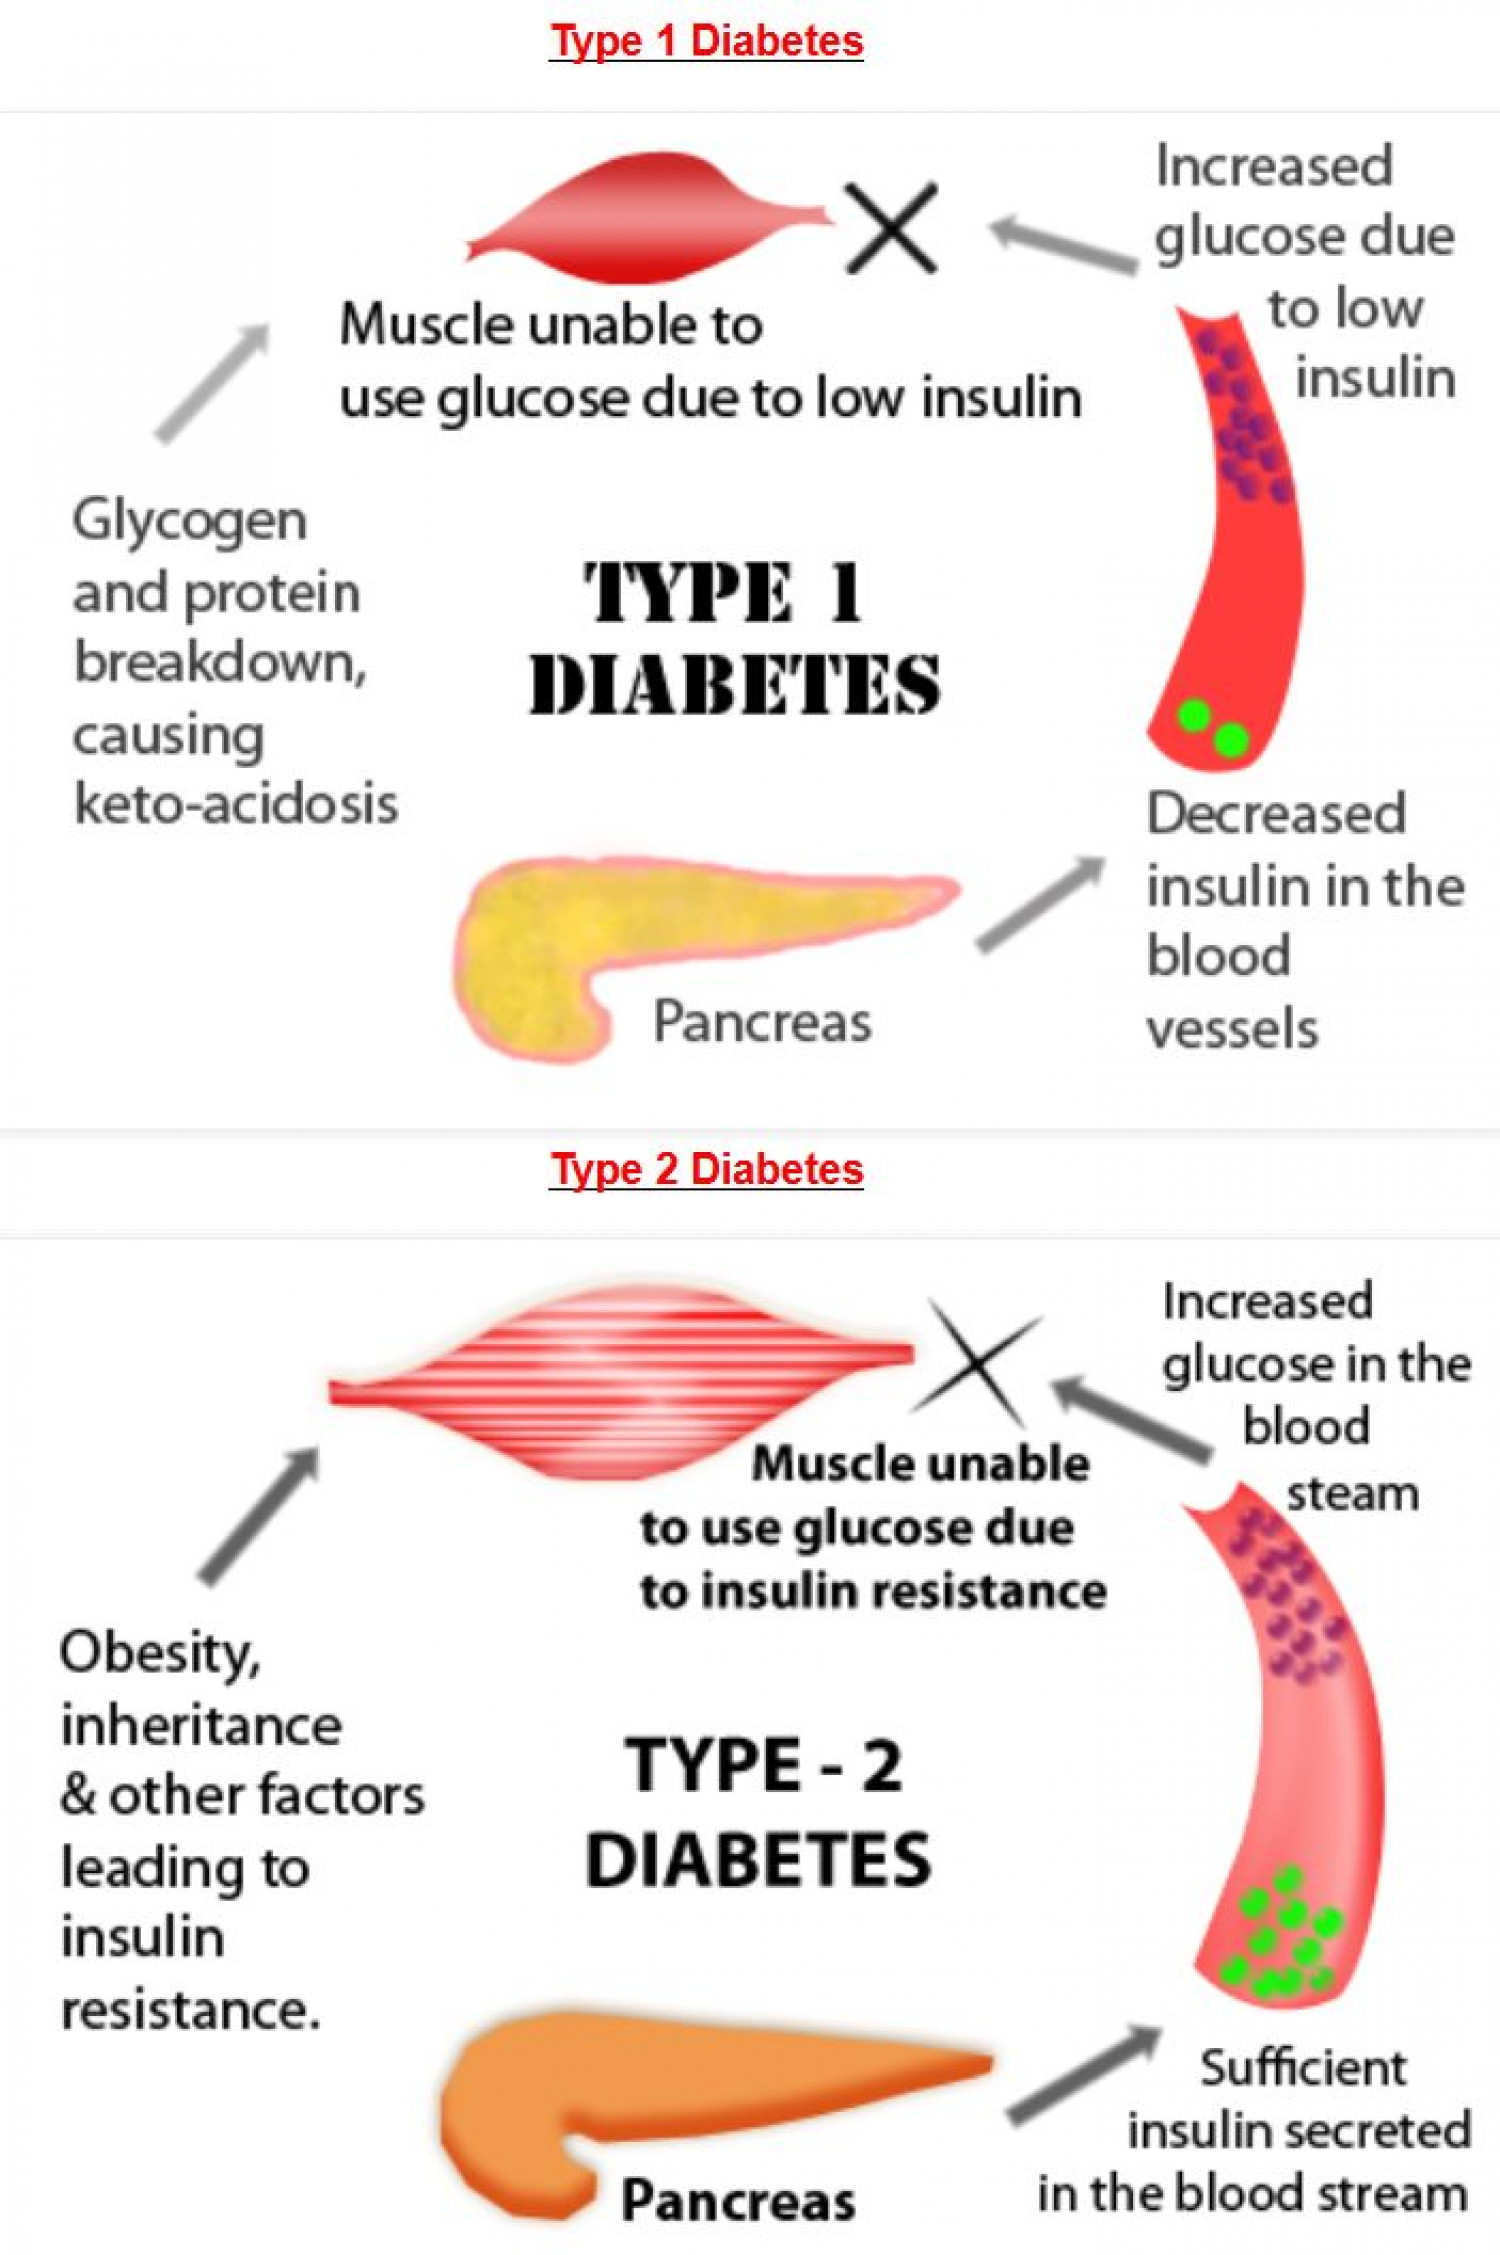 Diabetes: Type 1 Diabetes v/s Type 2 Diabetes | Visual.ly